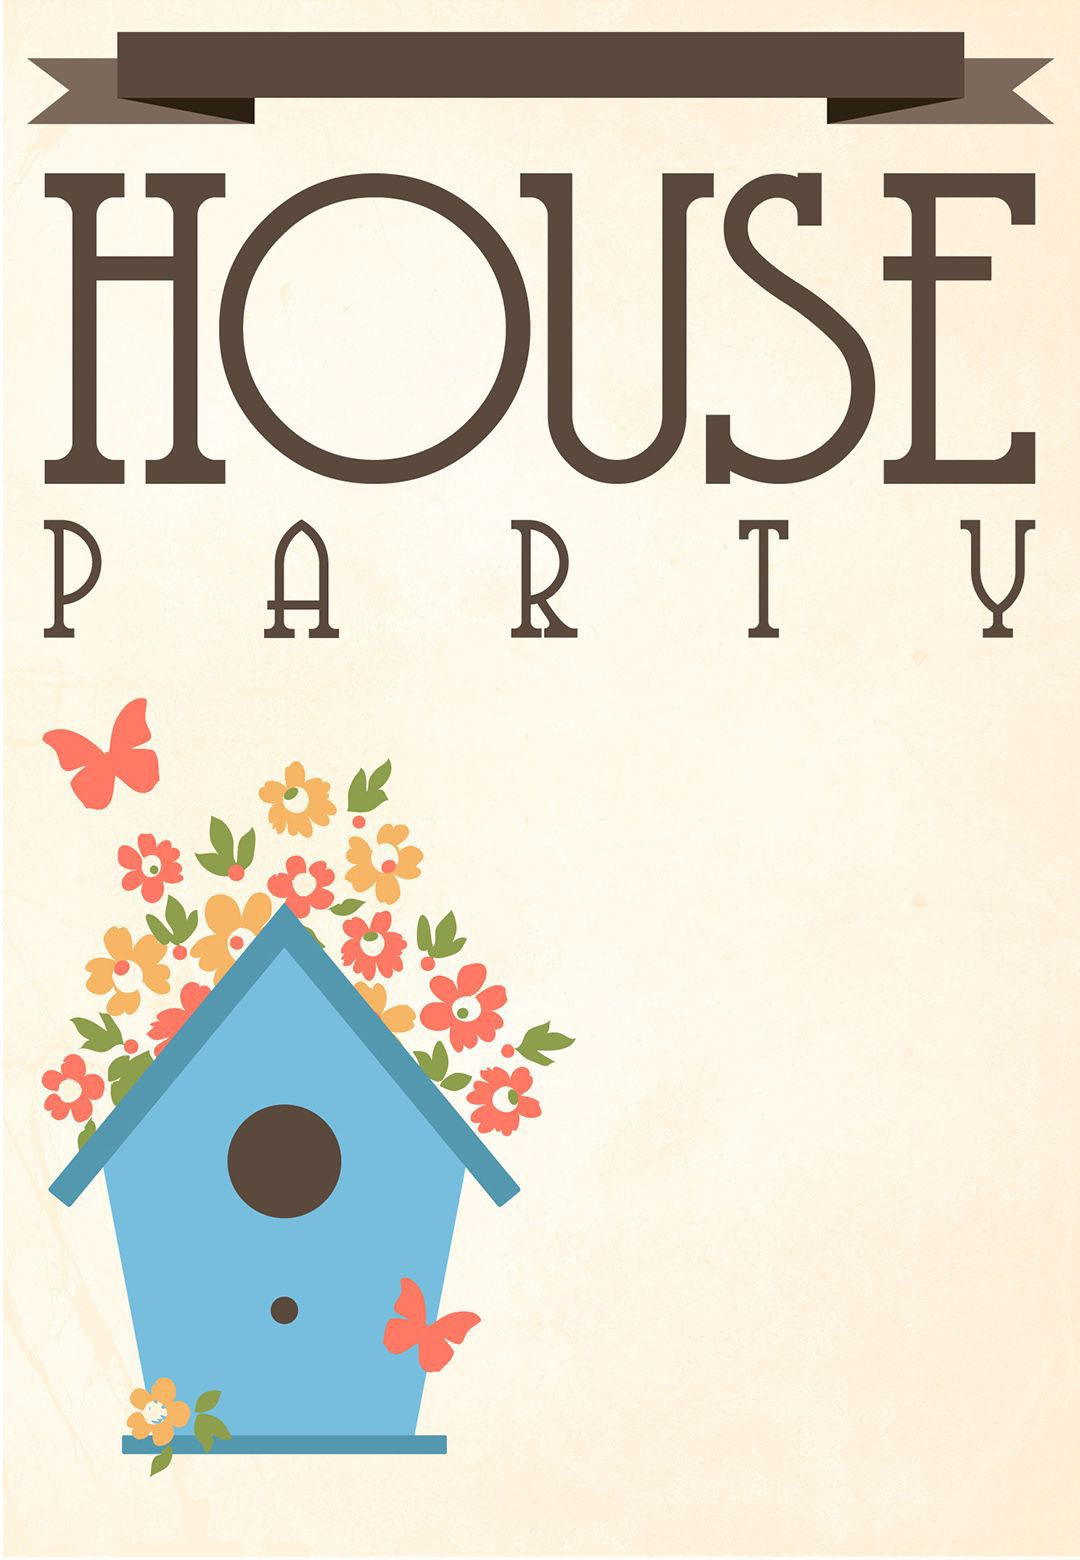 004 Impressive Housewarming Party Invitation Template Photo  Templates Free Download CardFull